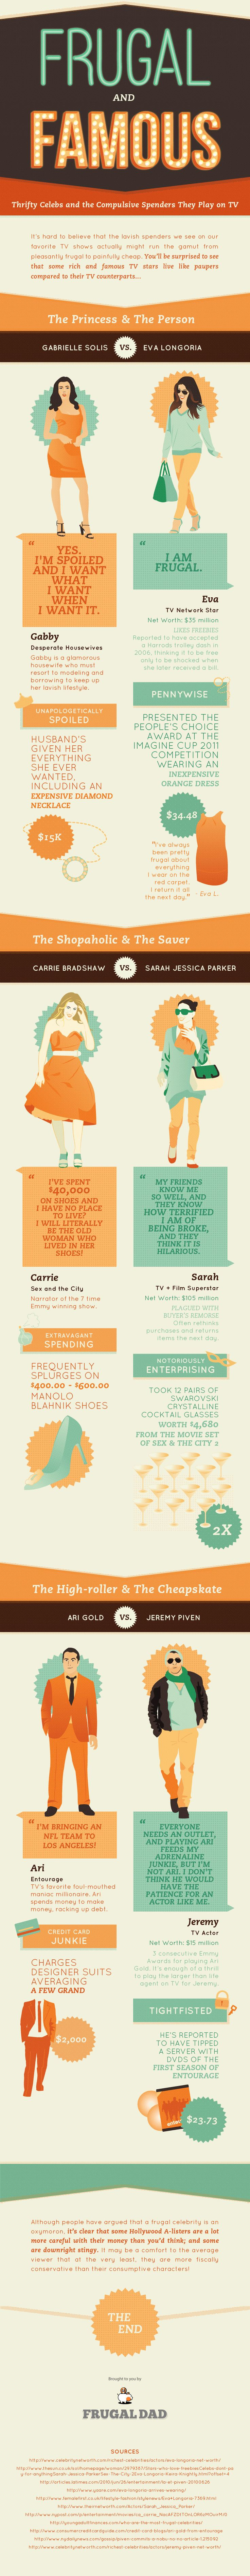 frugal and famous infographic